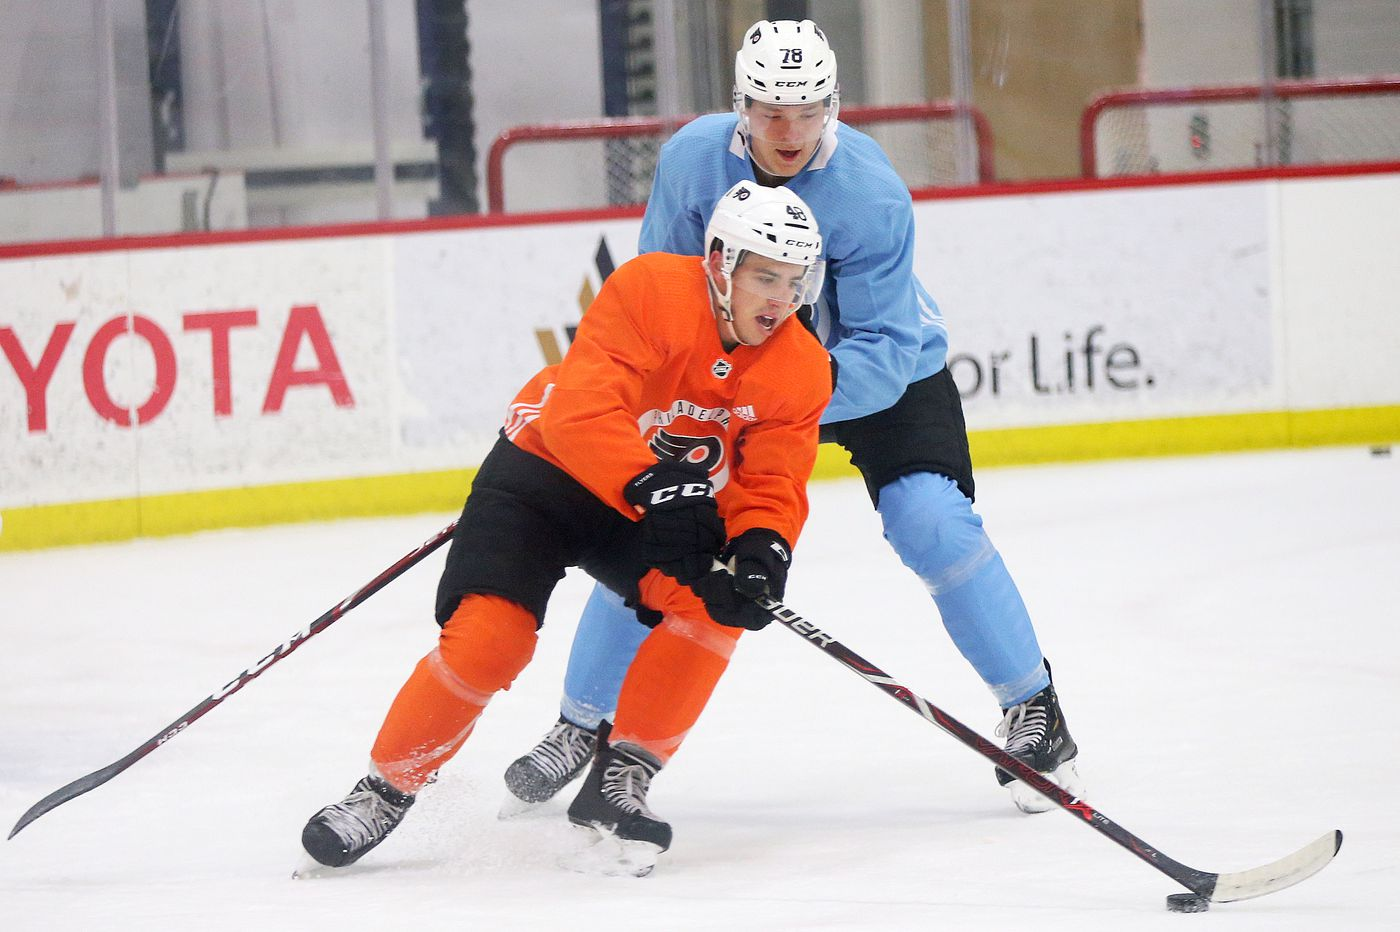 Morgan Frost, Isaac Ratcliffe, Joel Farabee: Kid Line could be Flyers' go-to unit in future